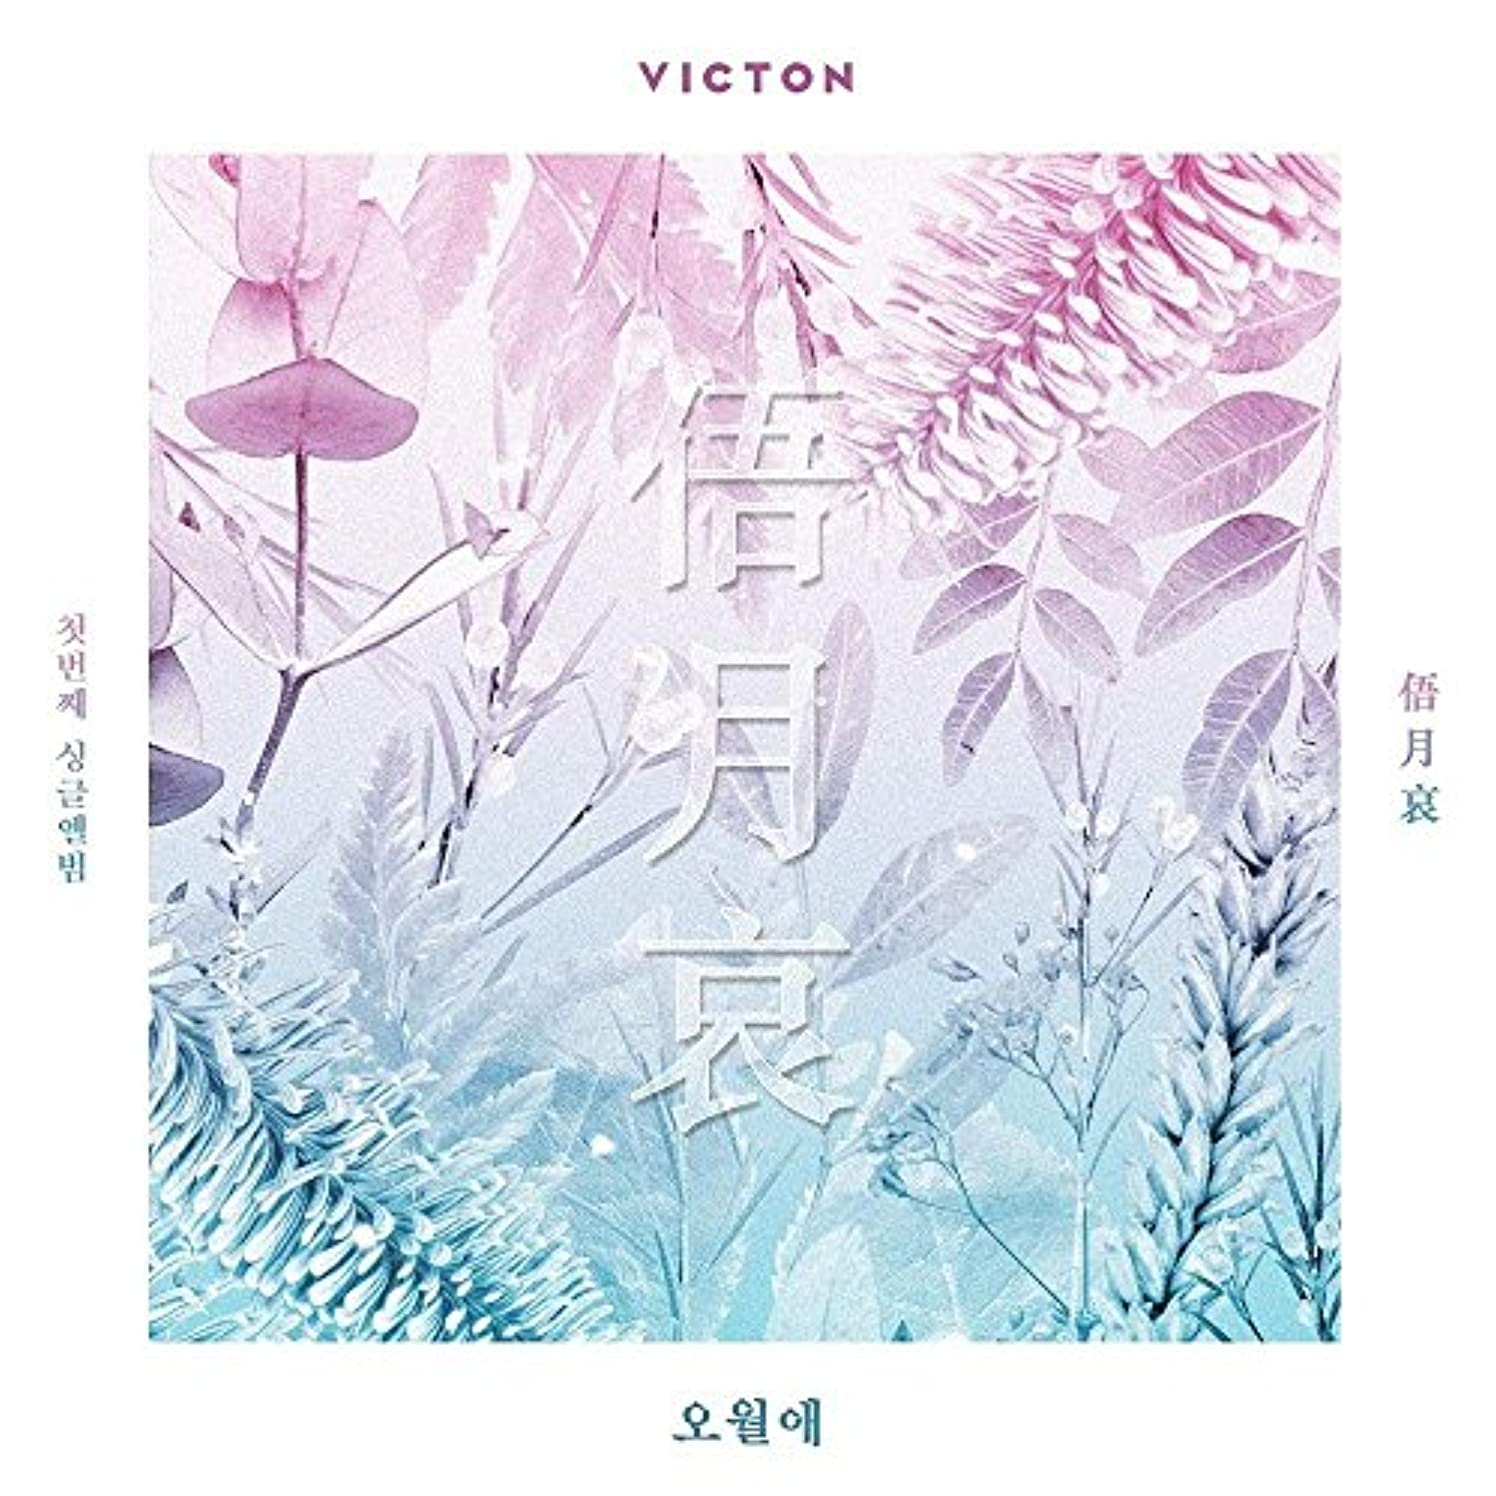 Victon - [Face The Time Of Sorrow/俉月哀/???] 1st Single Album CD+Booklet+PhotoCard K-POP Sealed